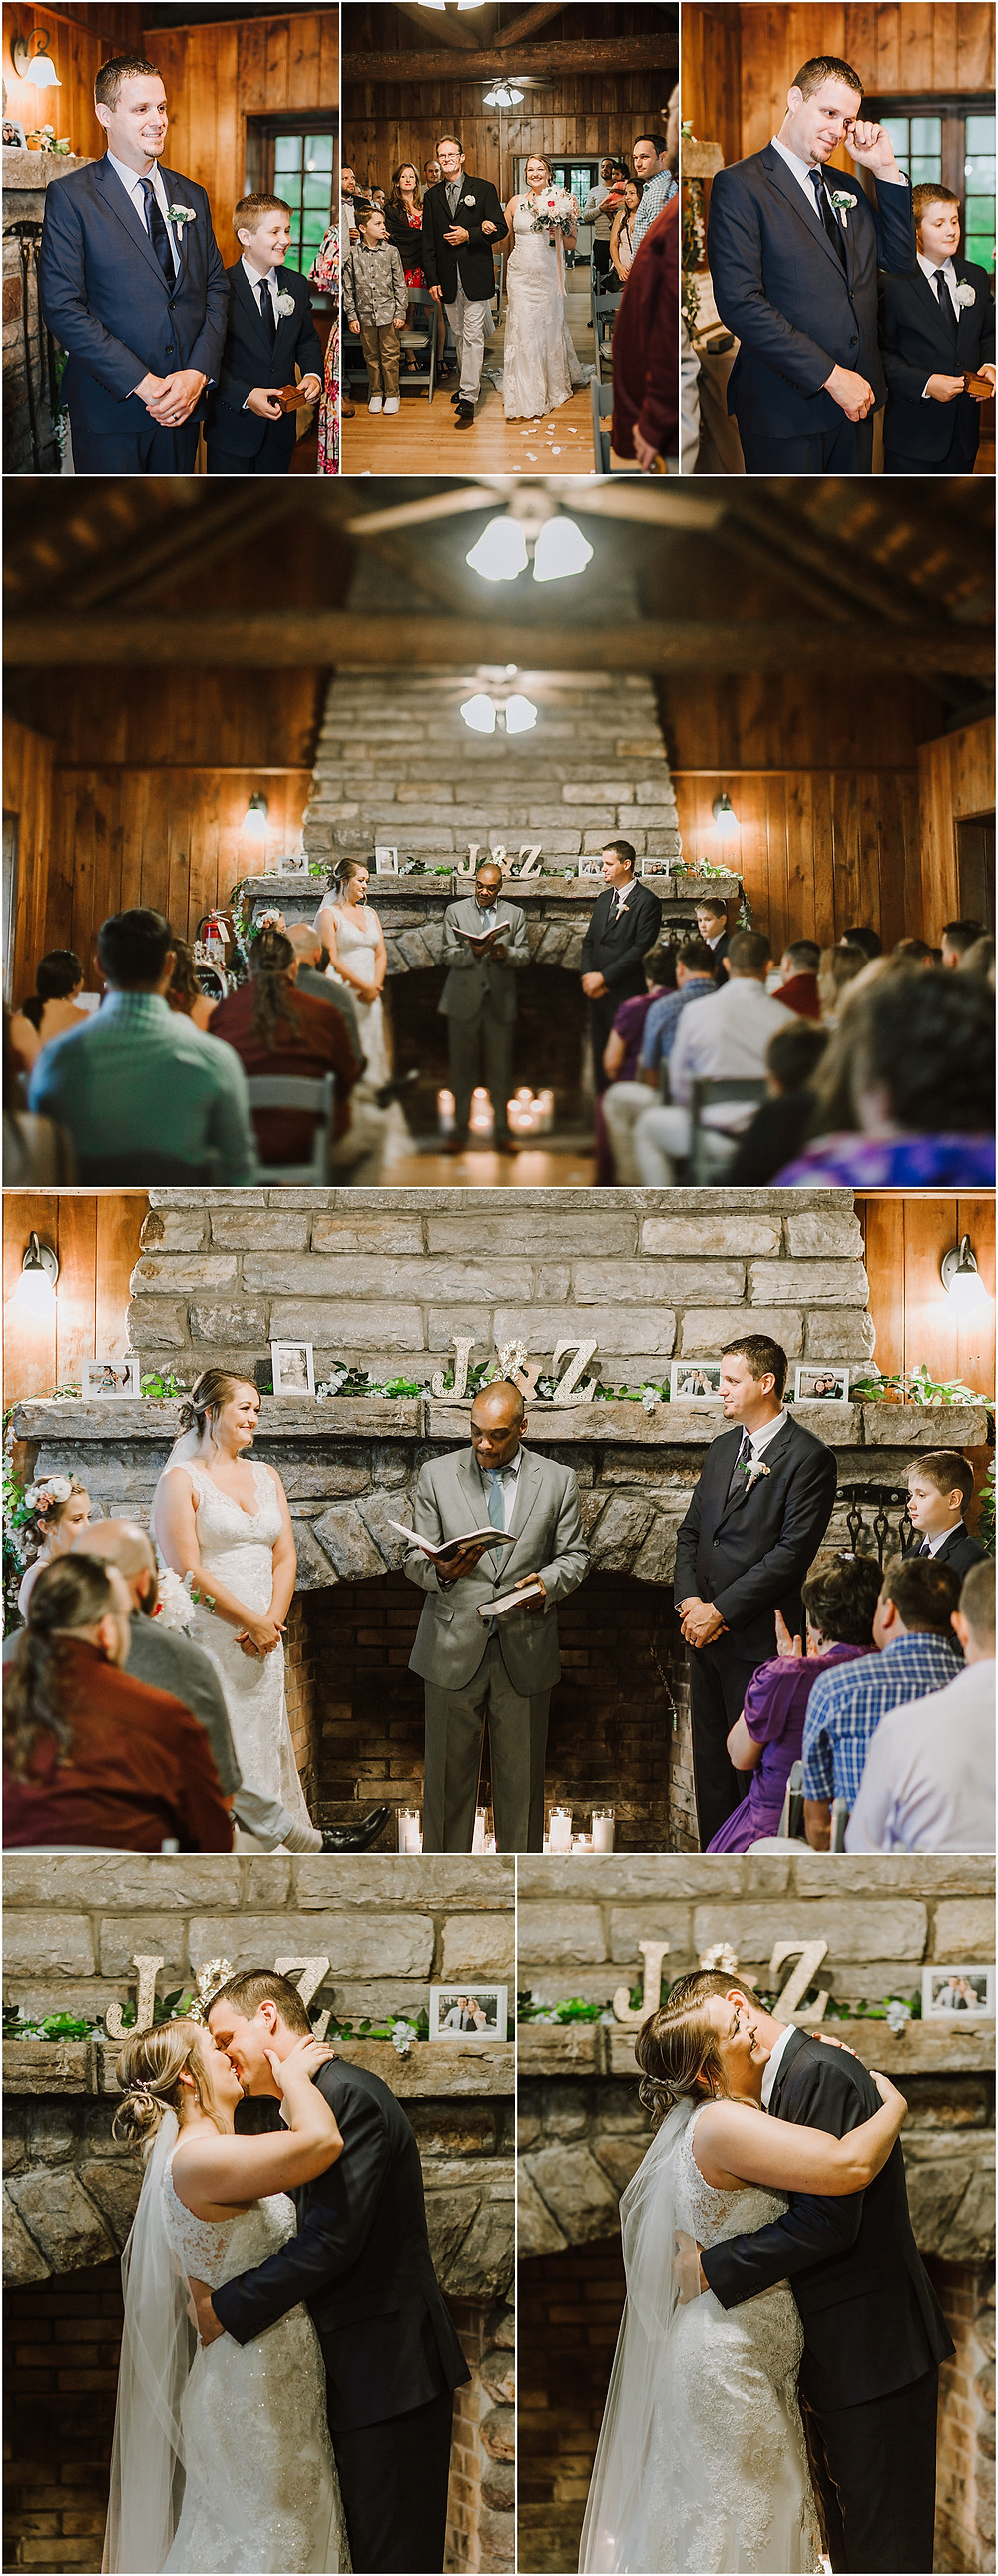 Ceremony at the Tea Room at Gambrill State Park - Frederick Maryland Wedding Photographer